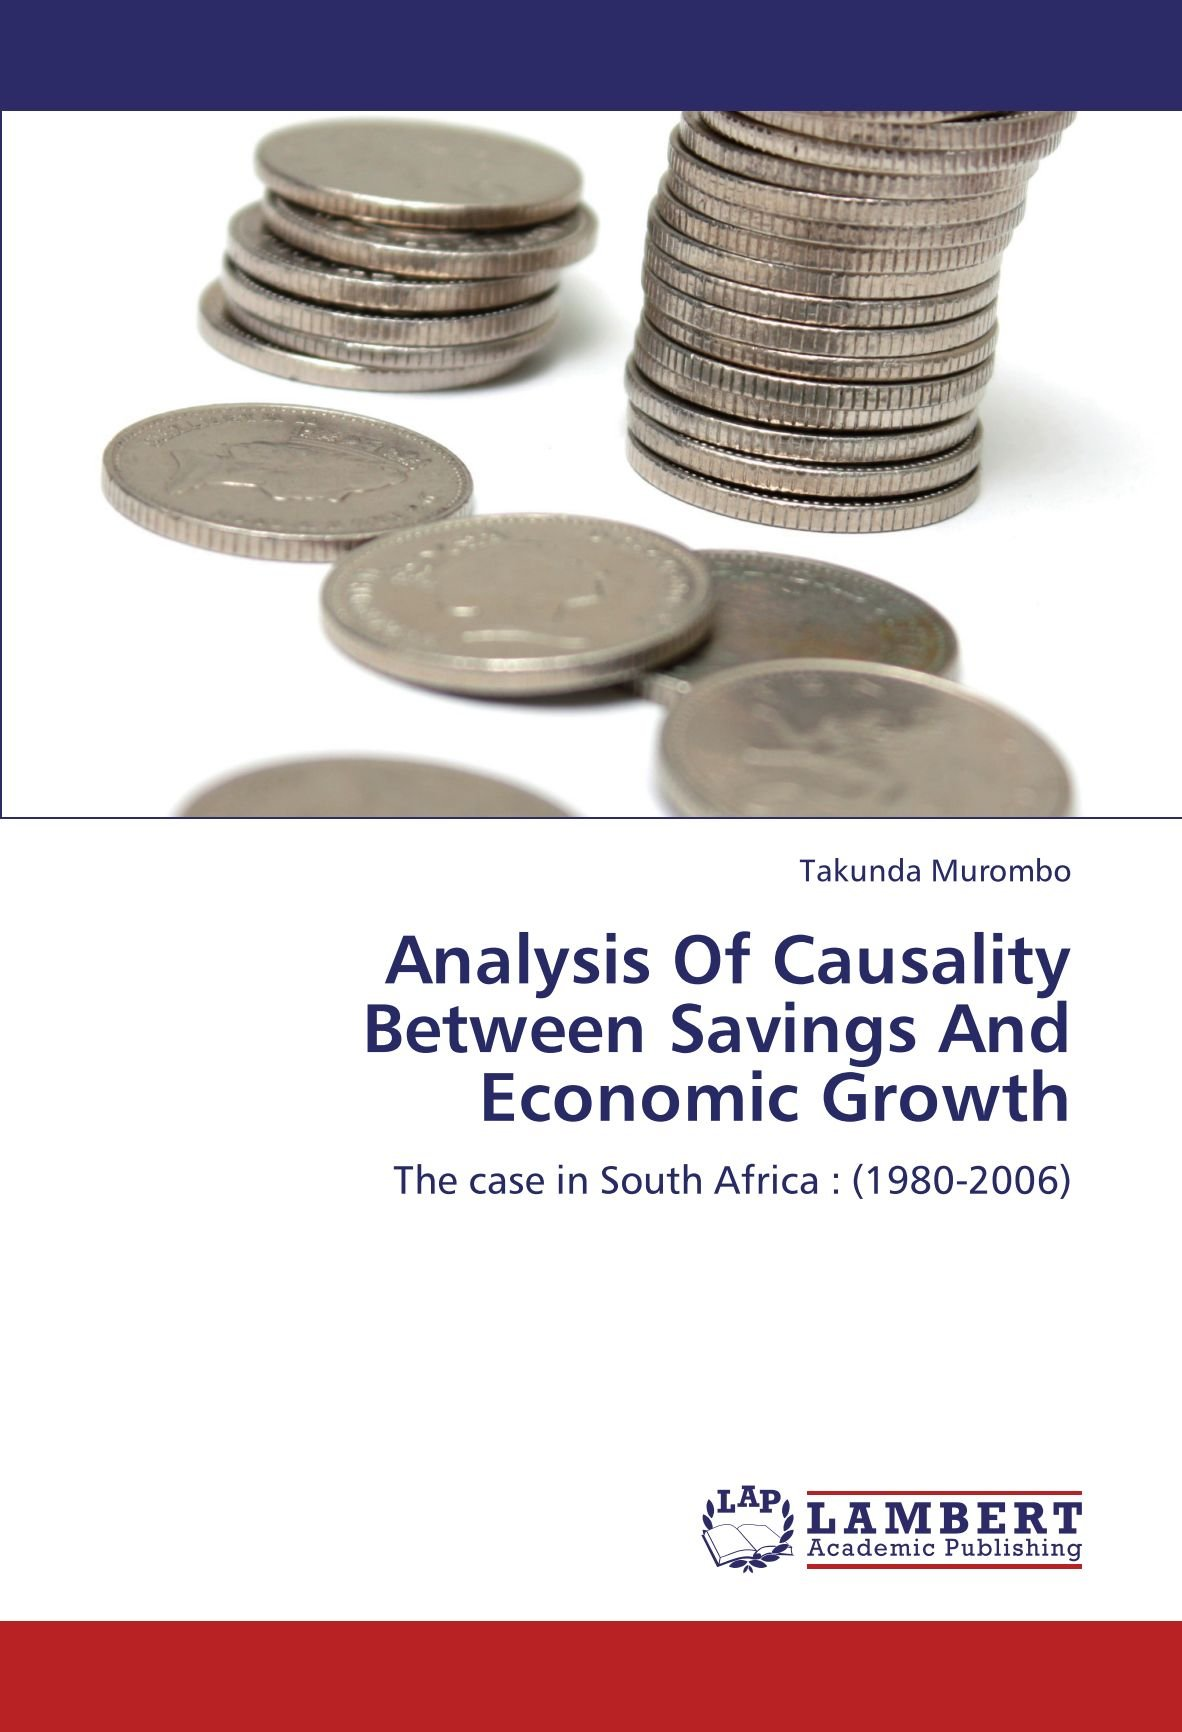 Analysis Of Causality Between Savings And Economic Growth: The case in South Africa : (1980-2006) pdf